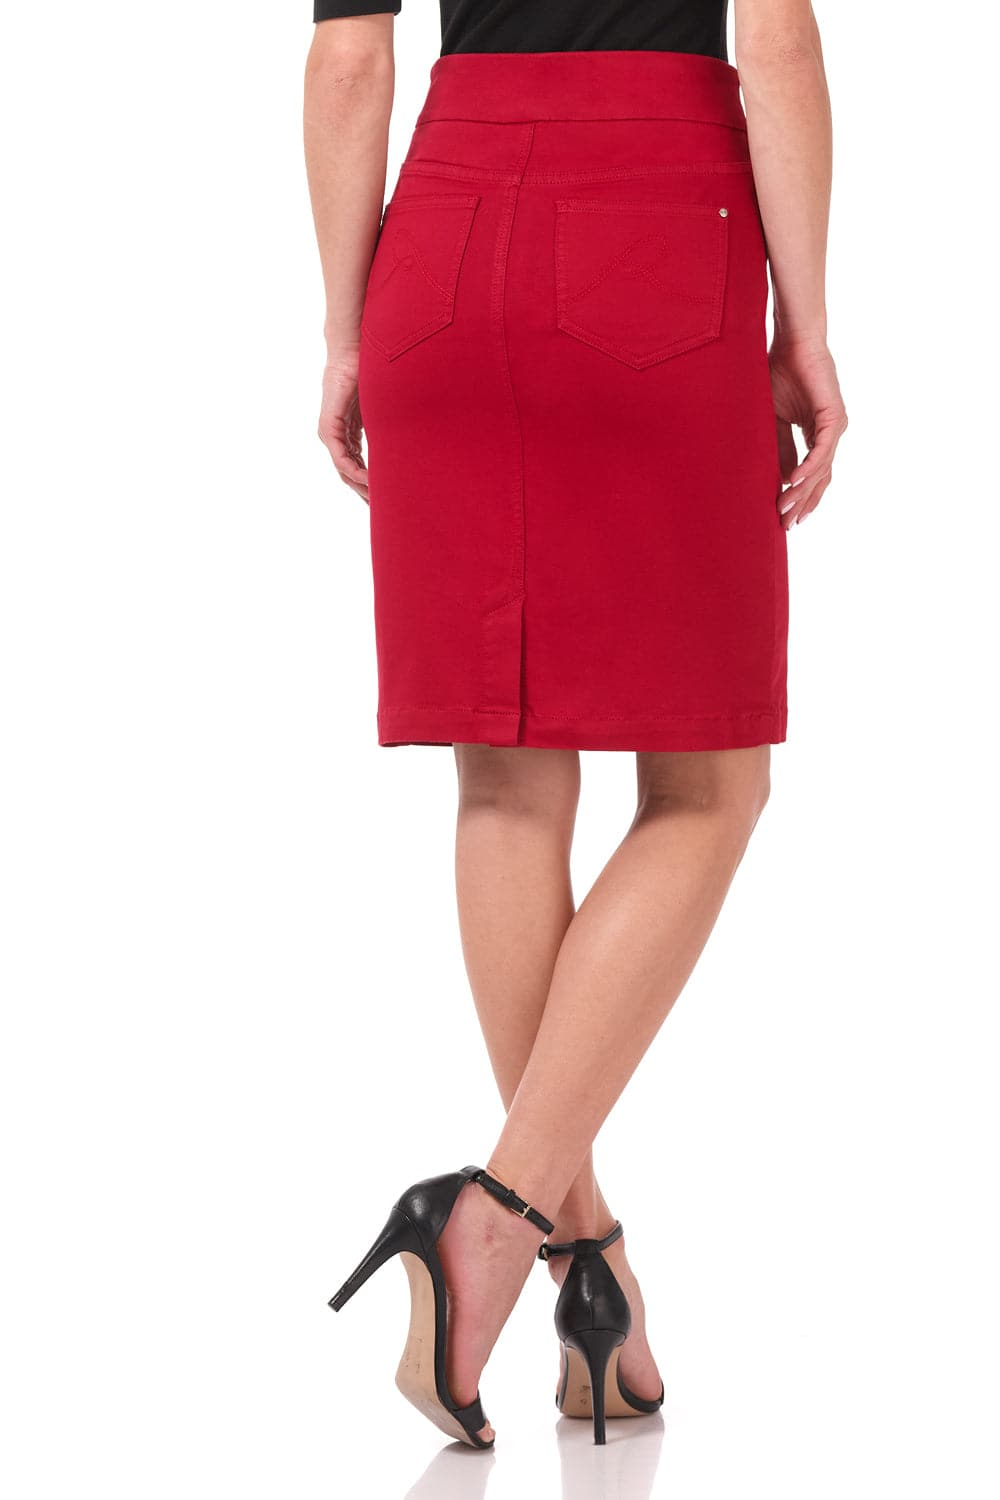 Pull-on Colored Denim Skirt with five real pockets